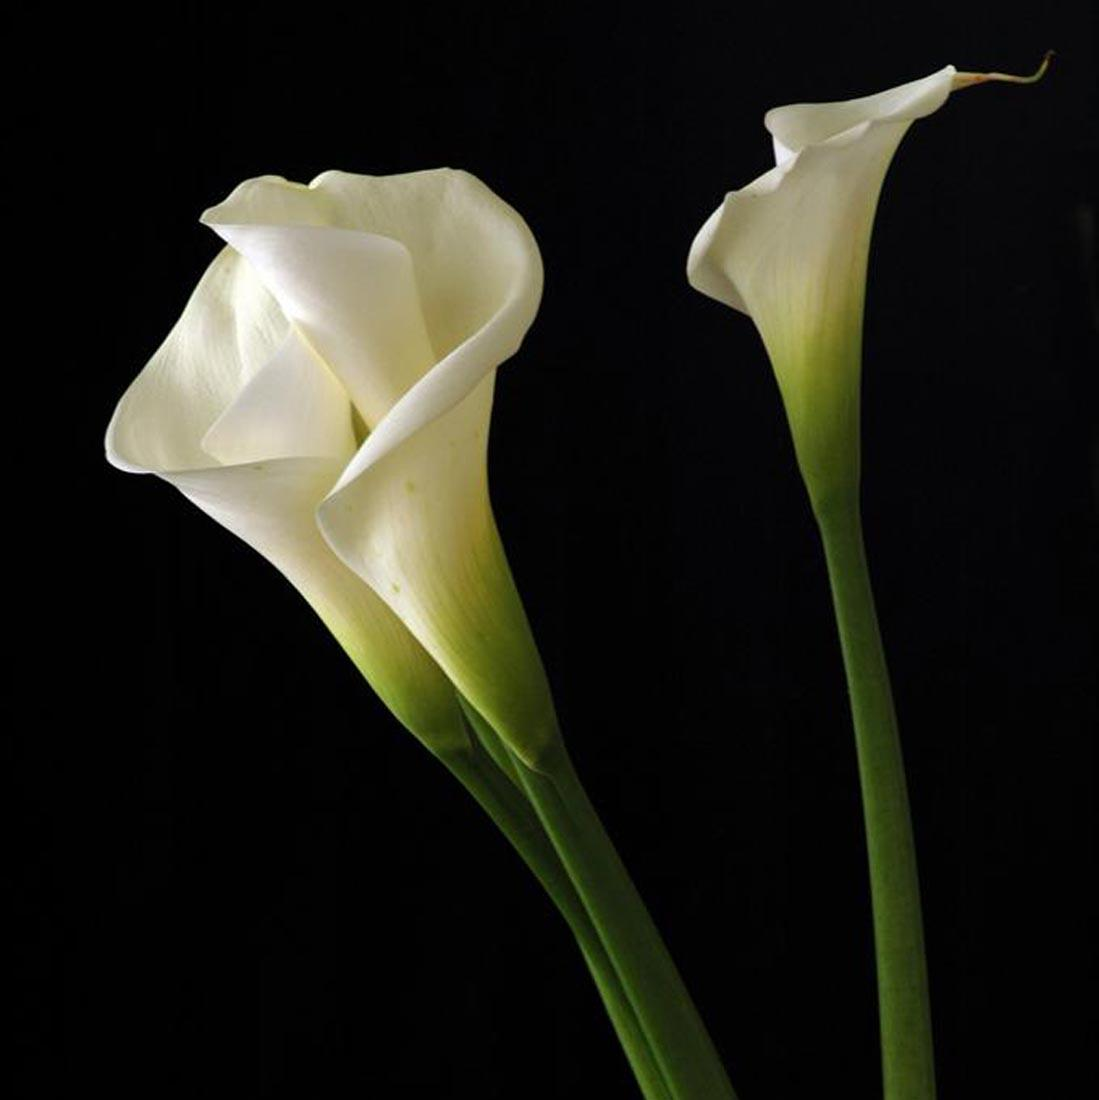 calla-lily-flowers-hd-wallpapers-cool-desktop-pictures-widescreen